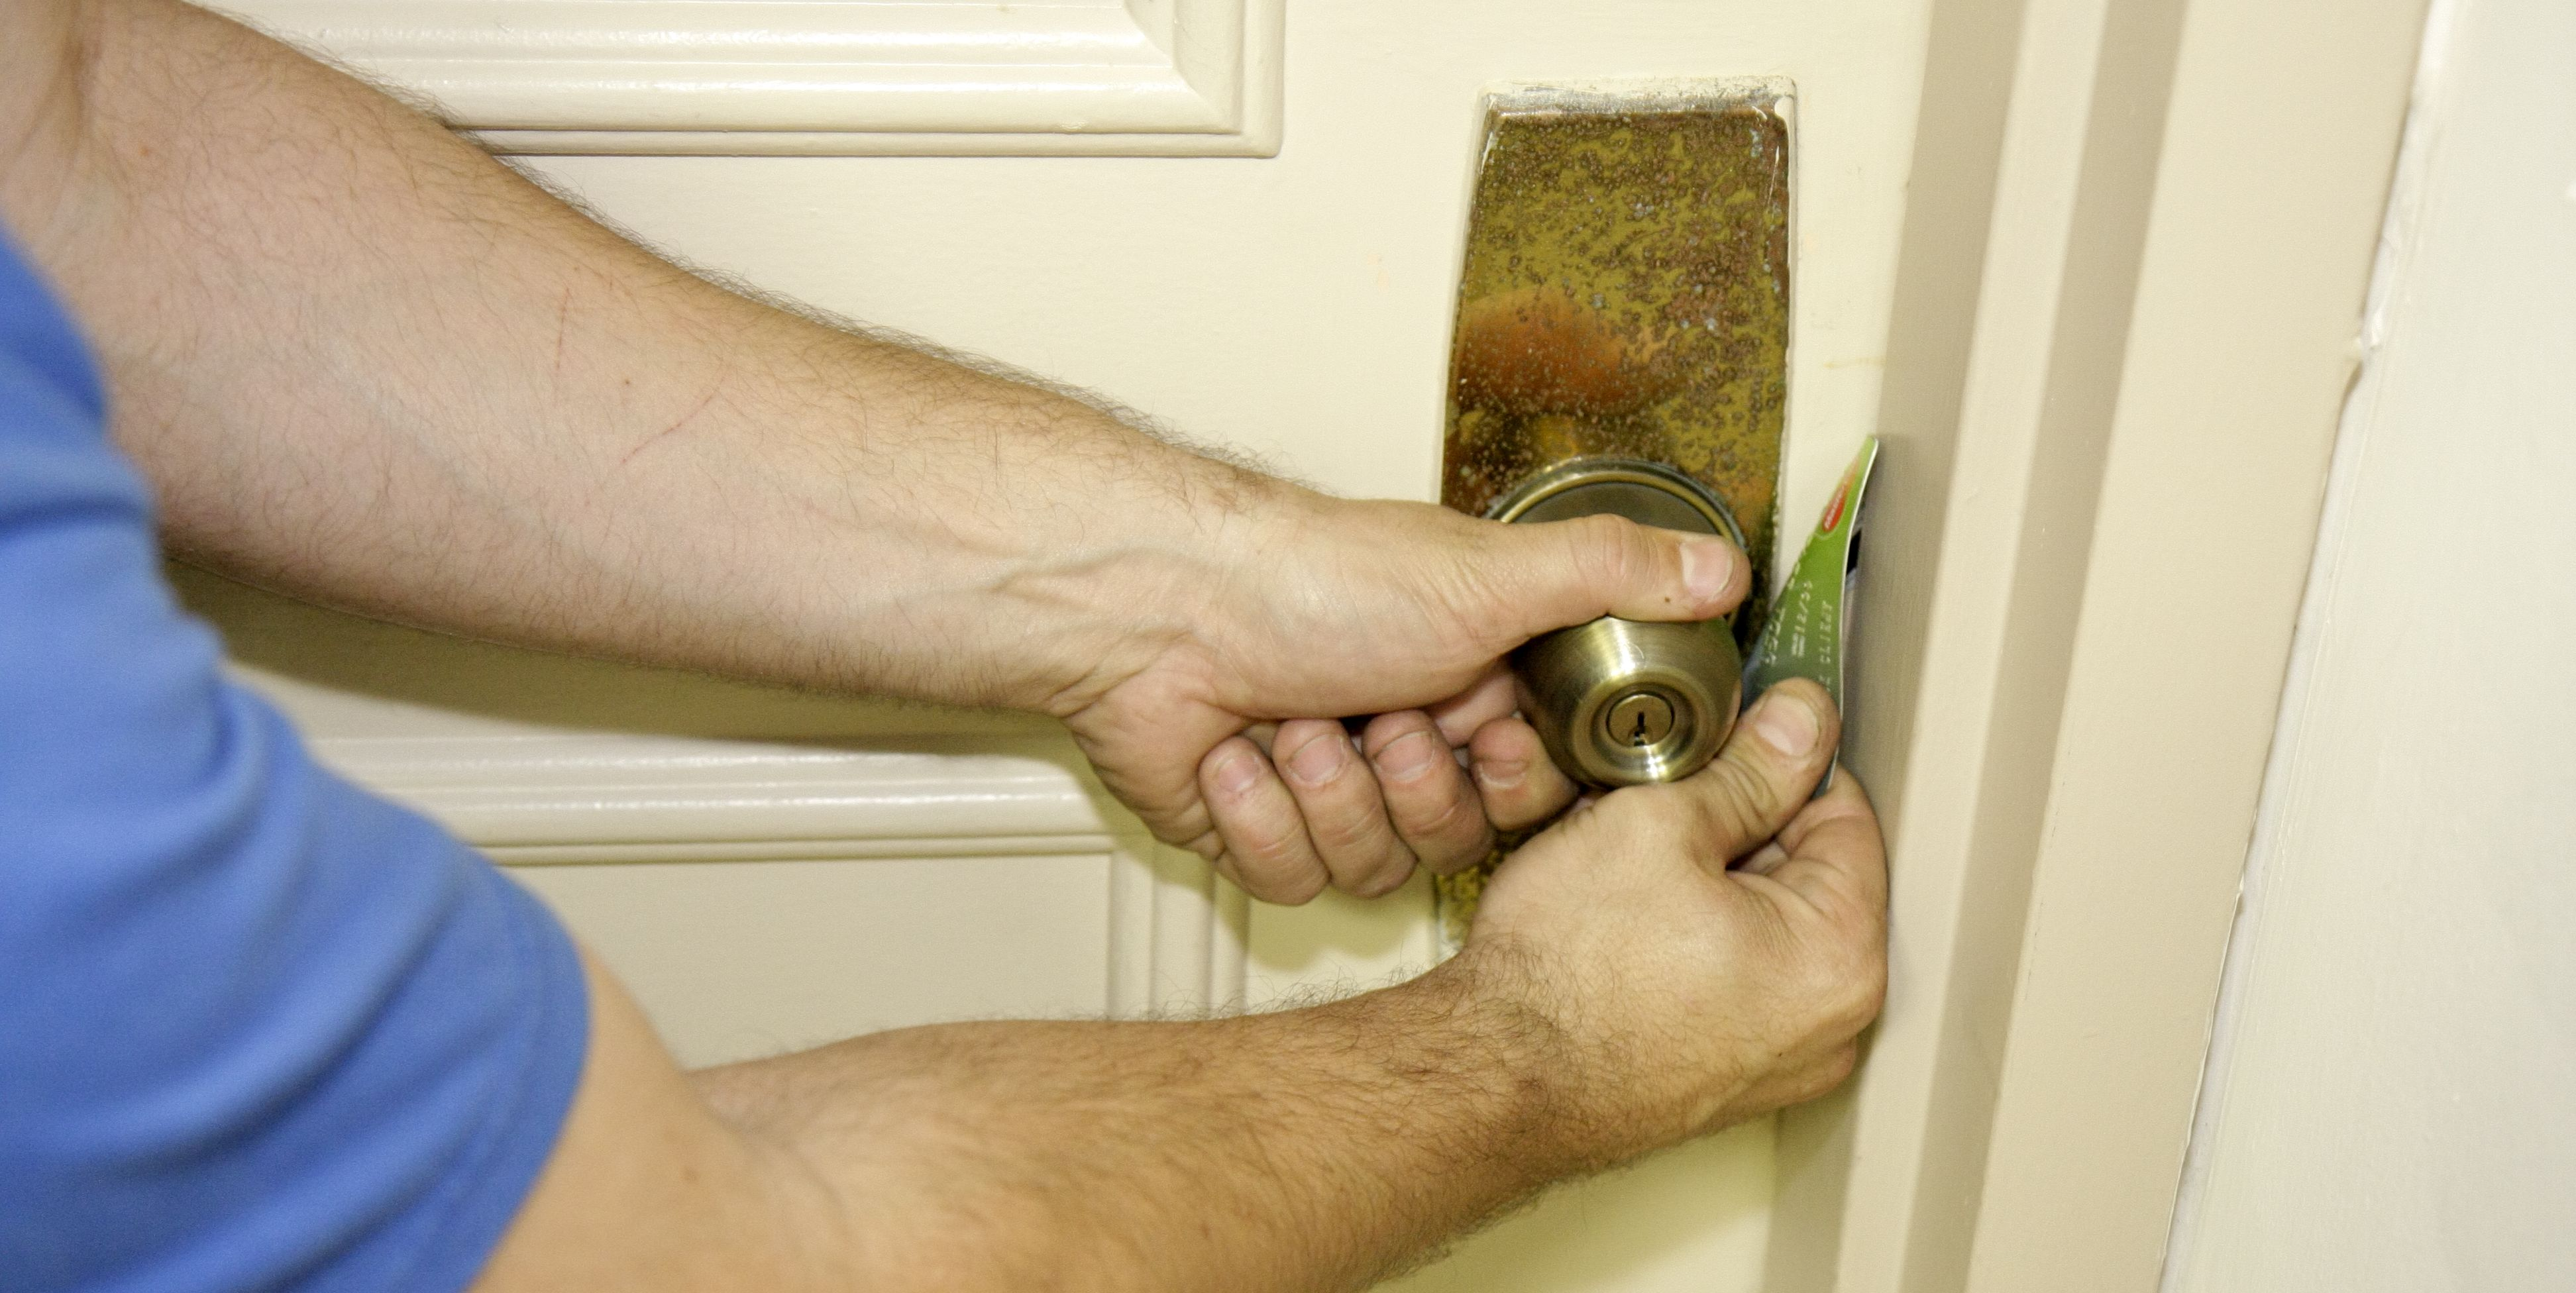 A man using a credit card to open a door.